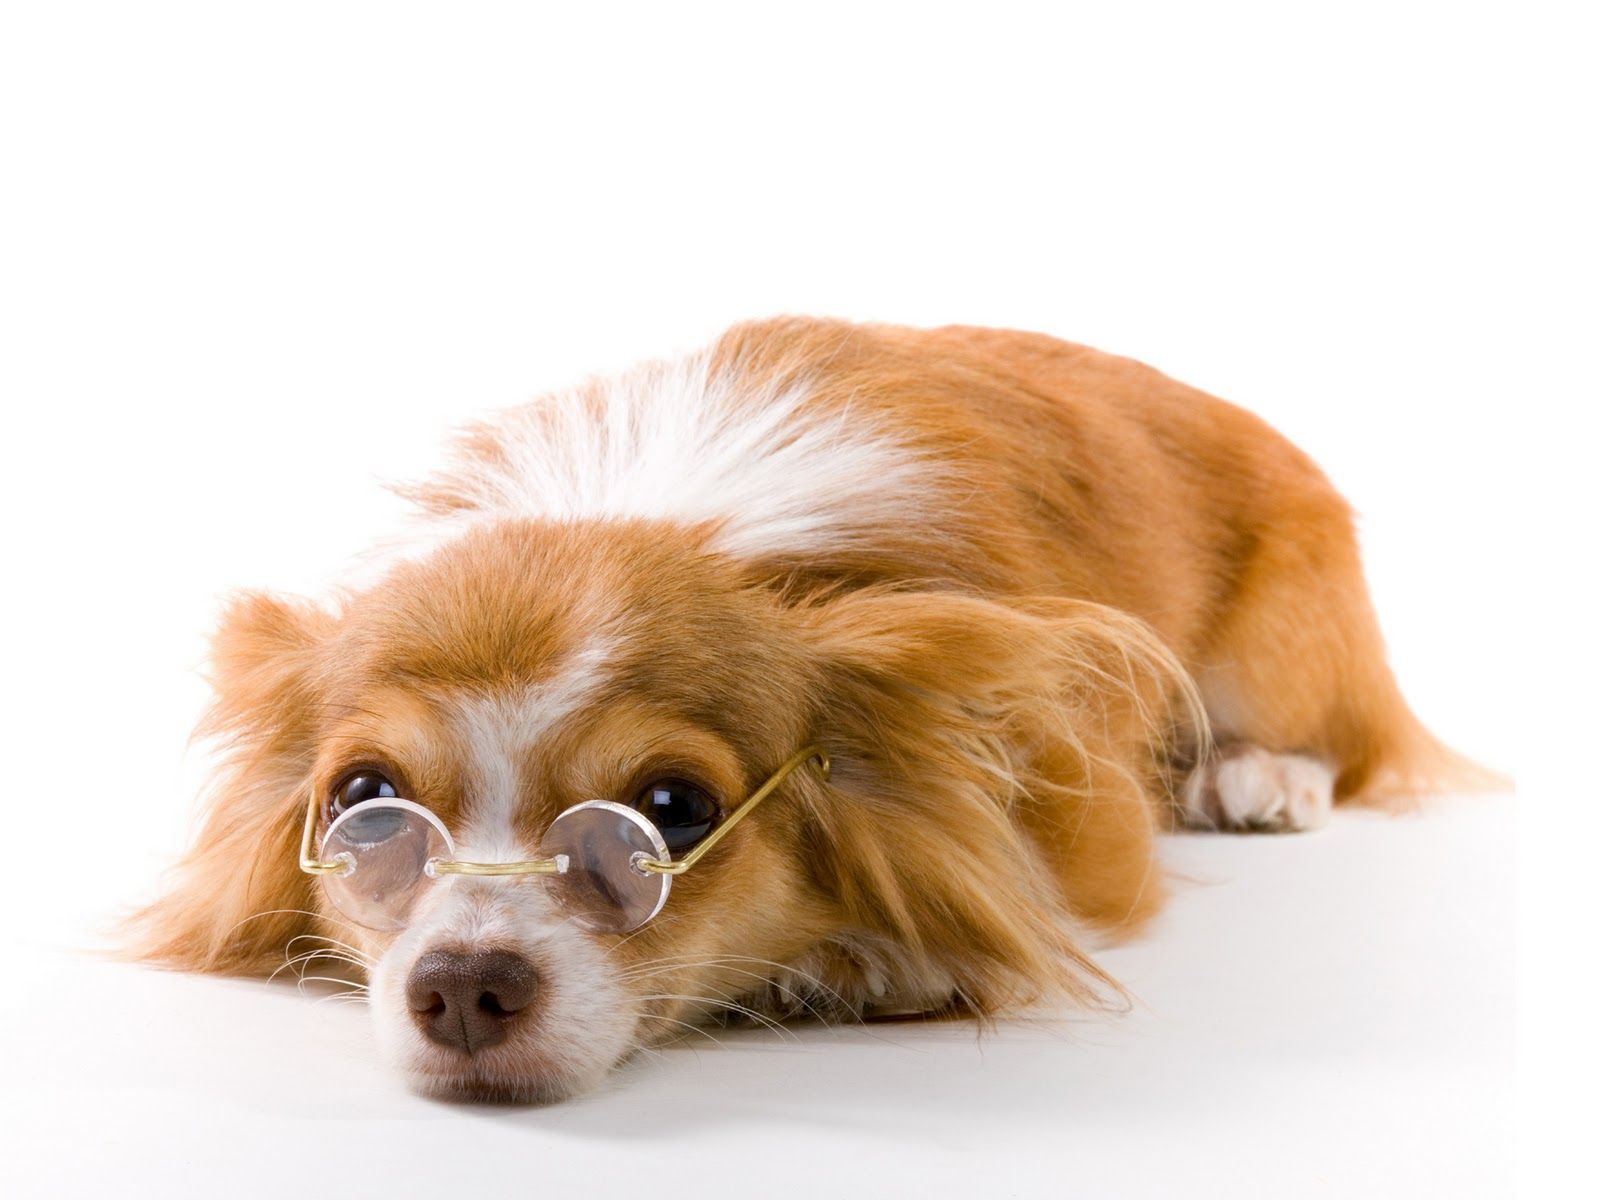 Funny Dog Wearing Glasses Wallpaper Background 6508